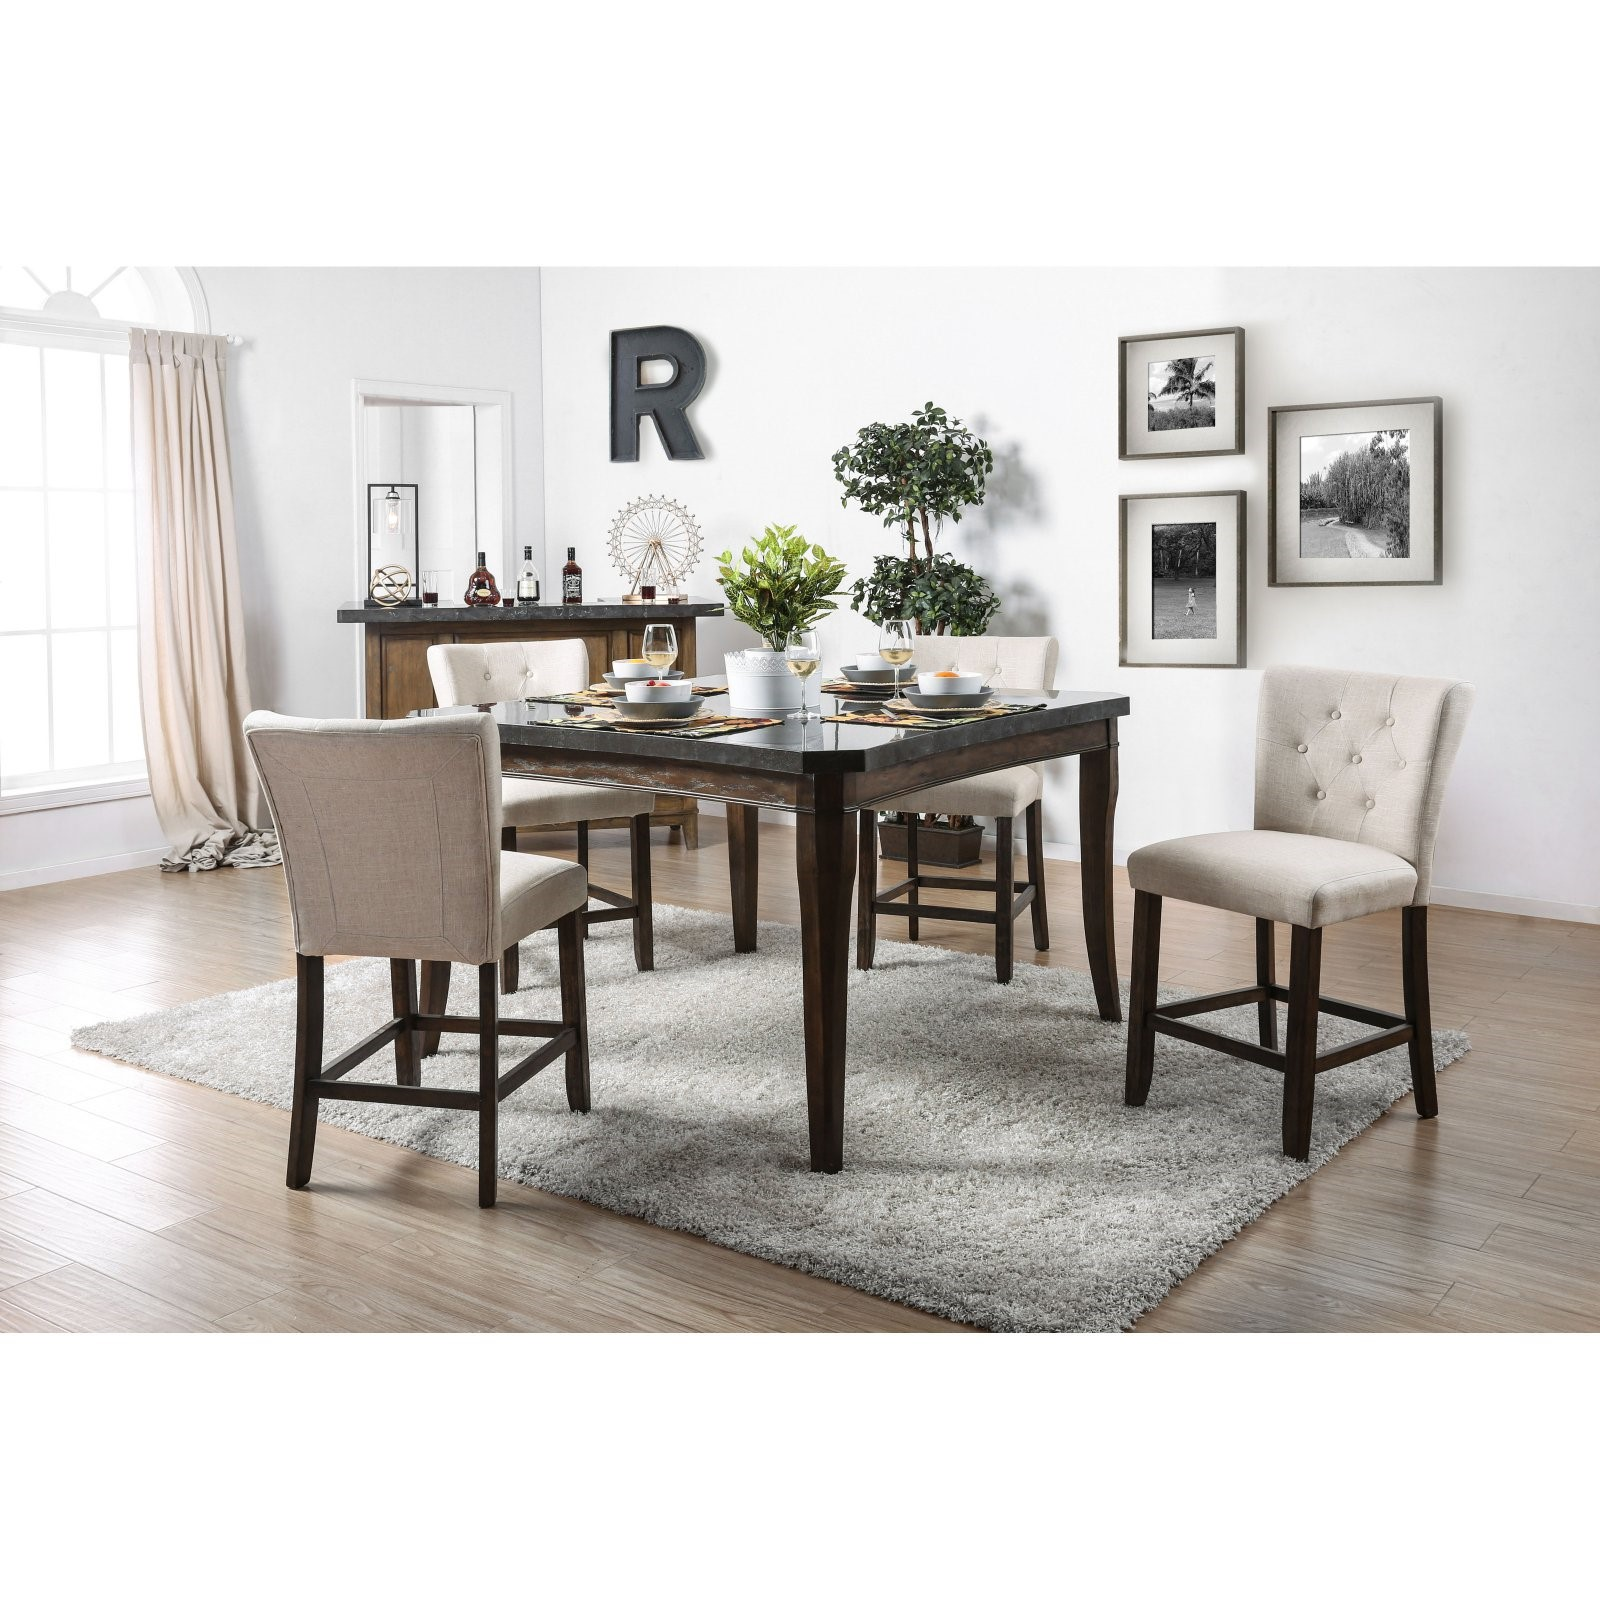 Furniture of America Tuscher Transitional Counter Height Table